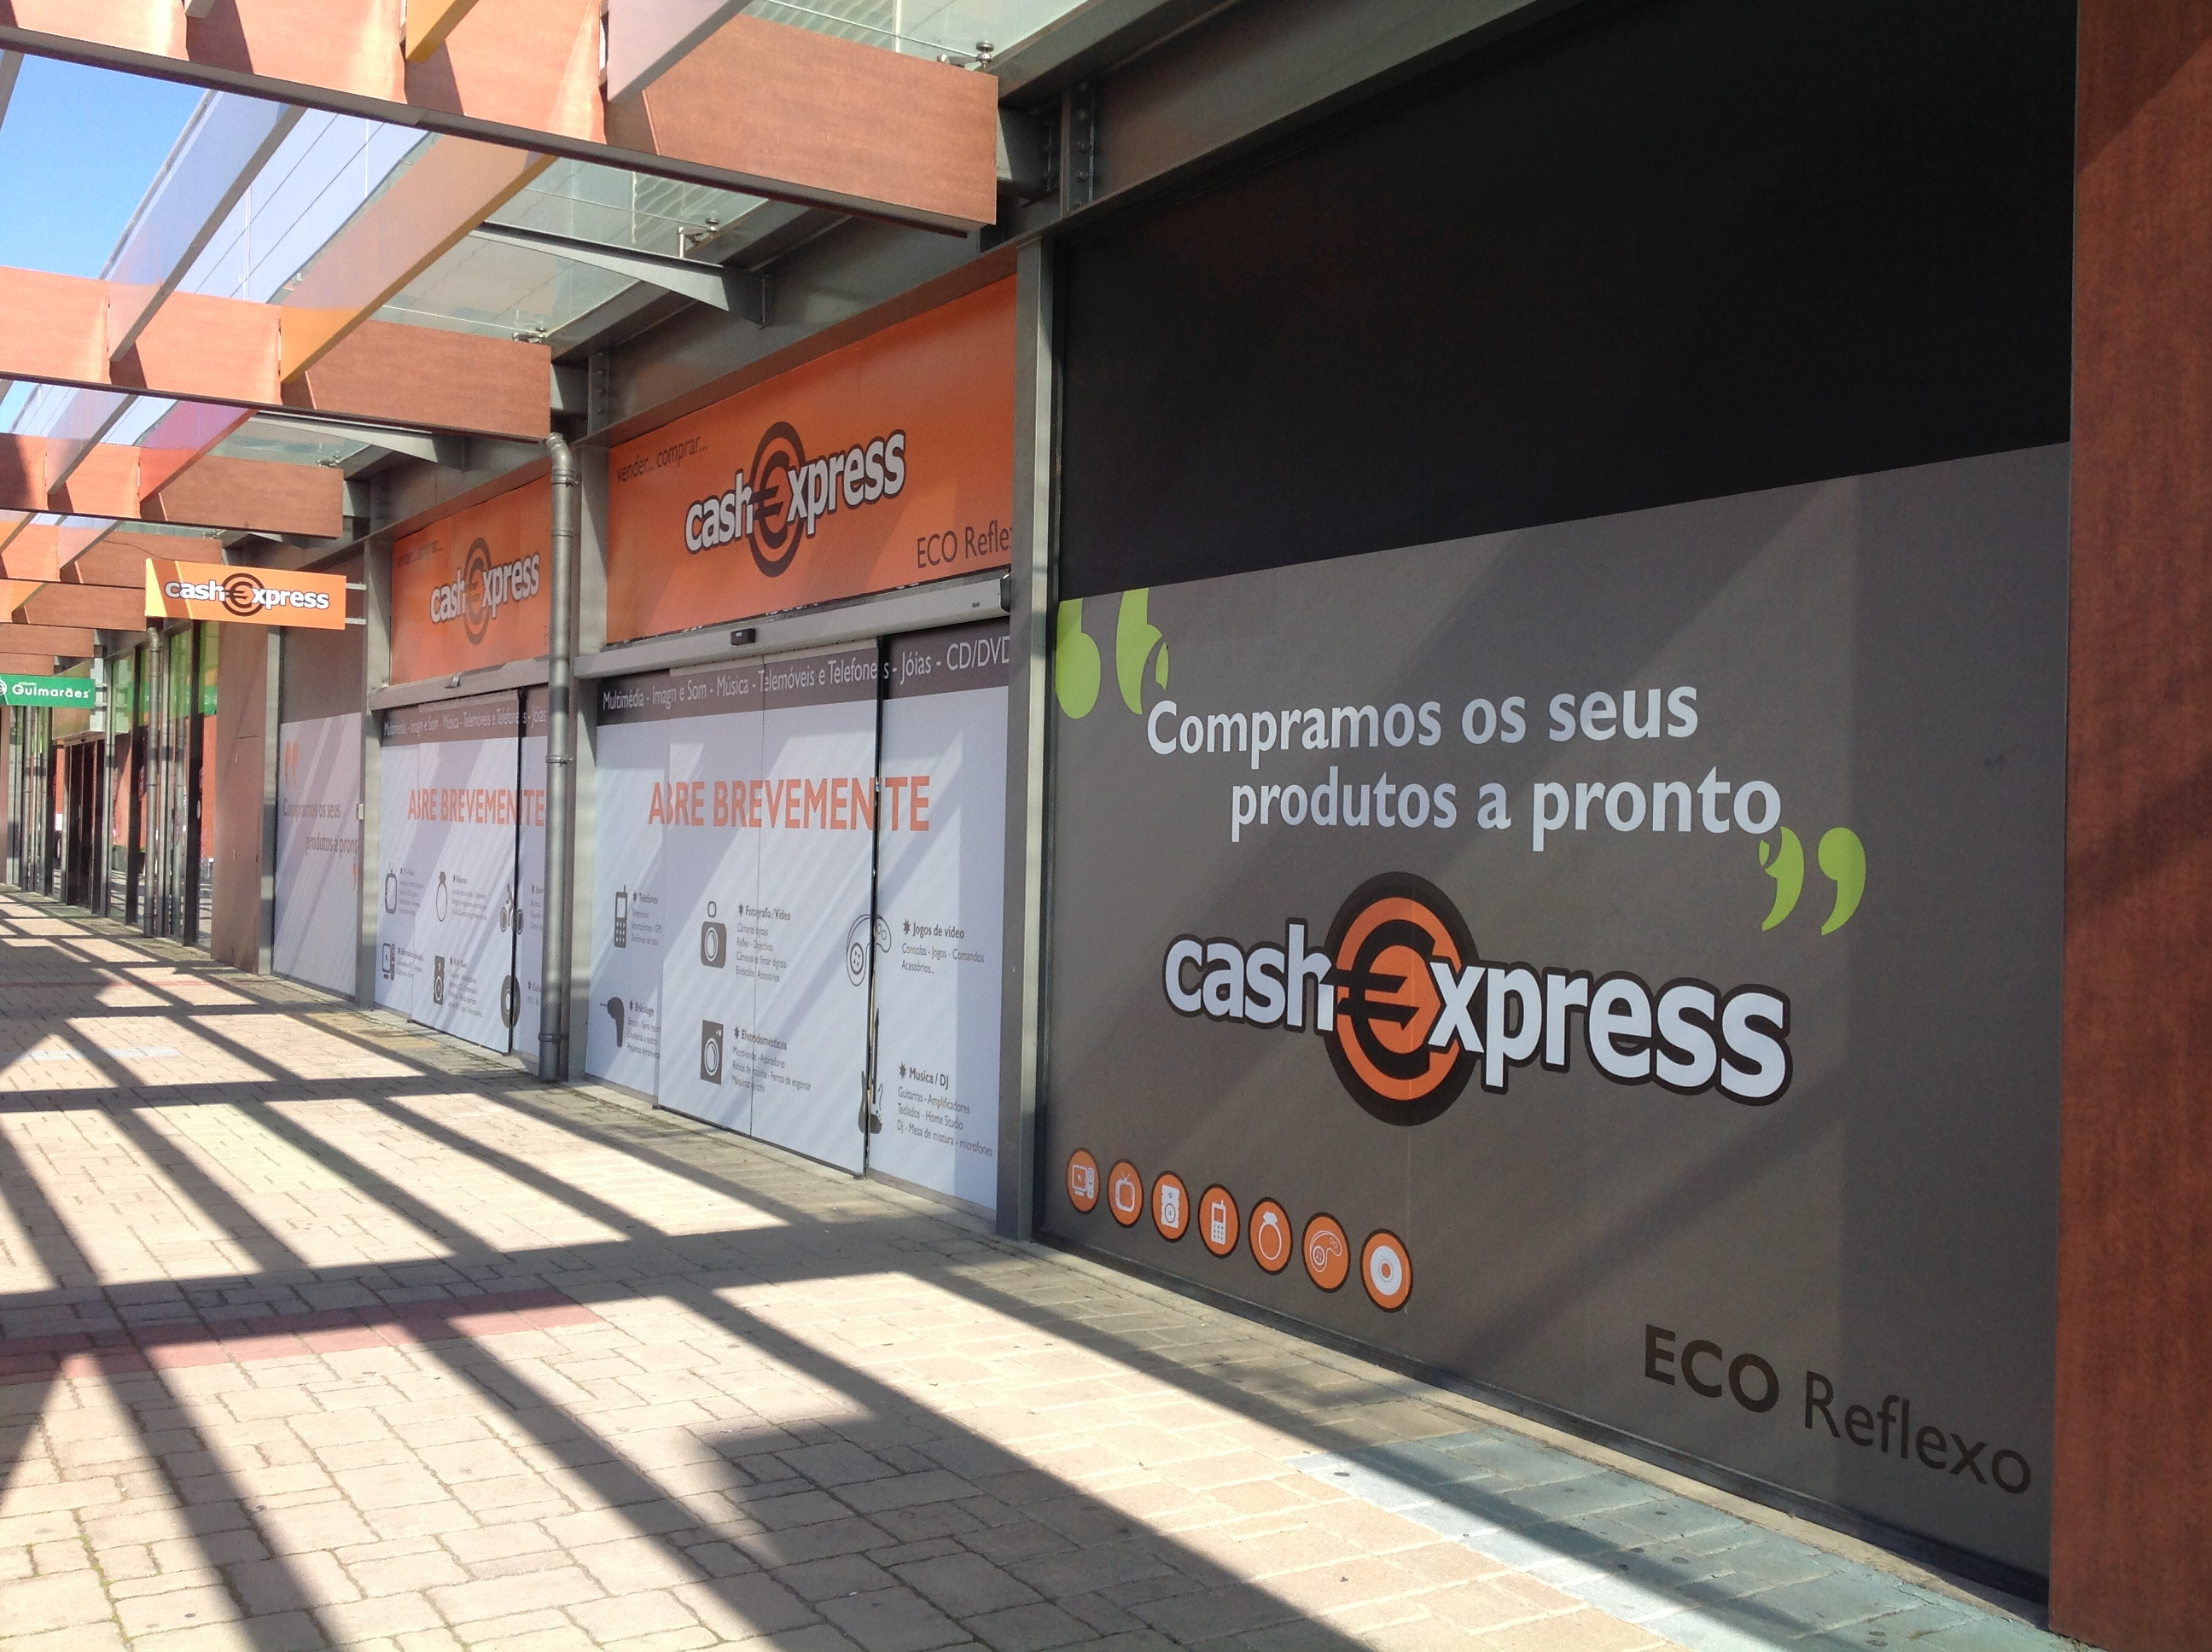 Le magasin Cash Express de Portimao, situé à 3/4 d'heure de Faro (photo : Cash Express)